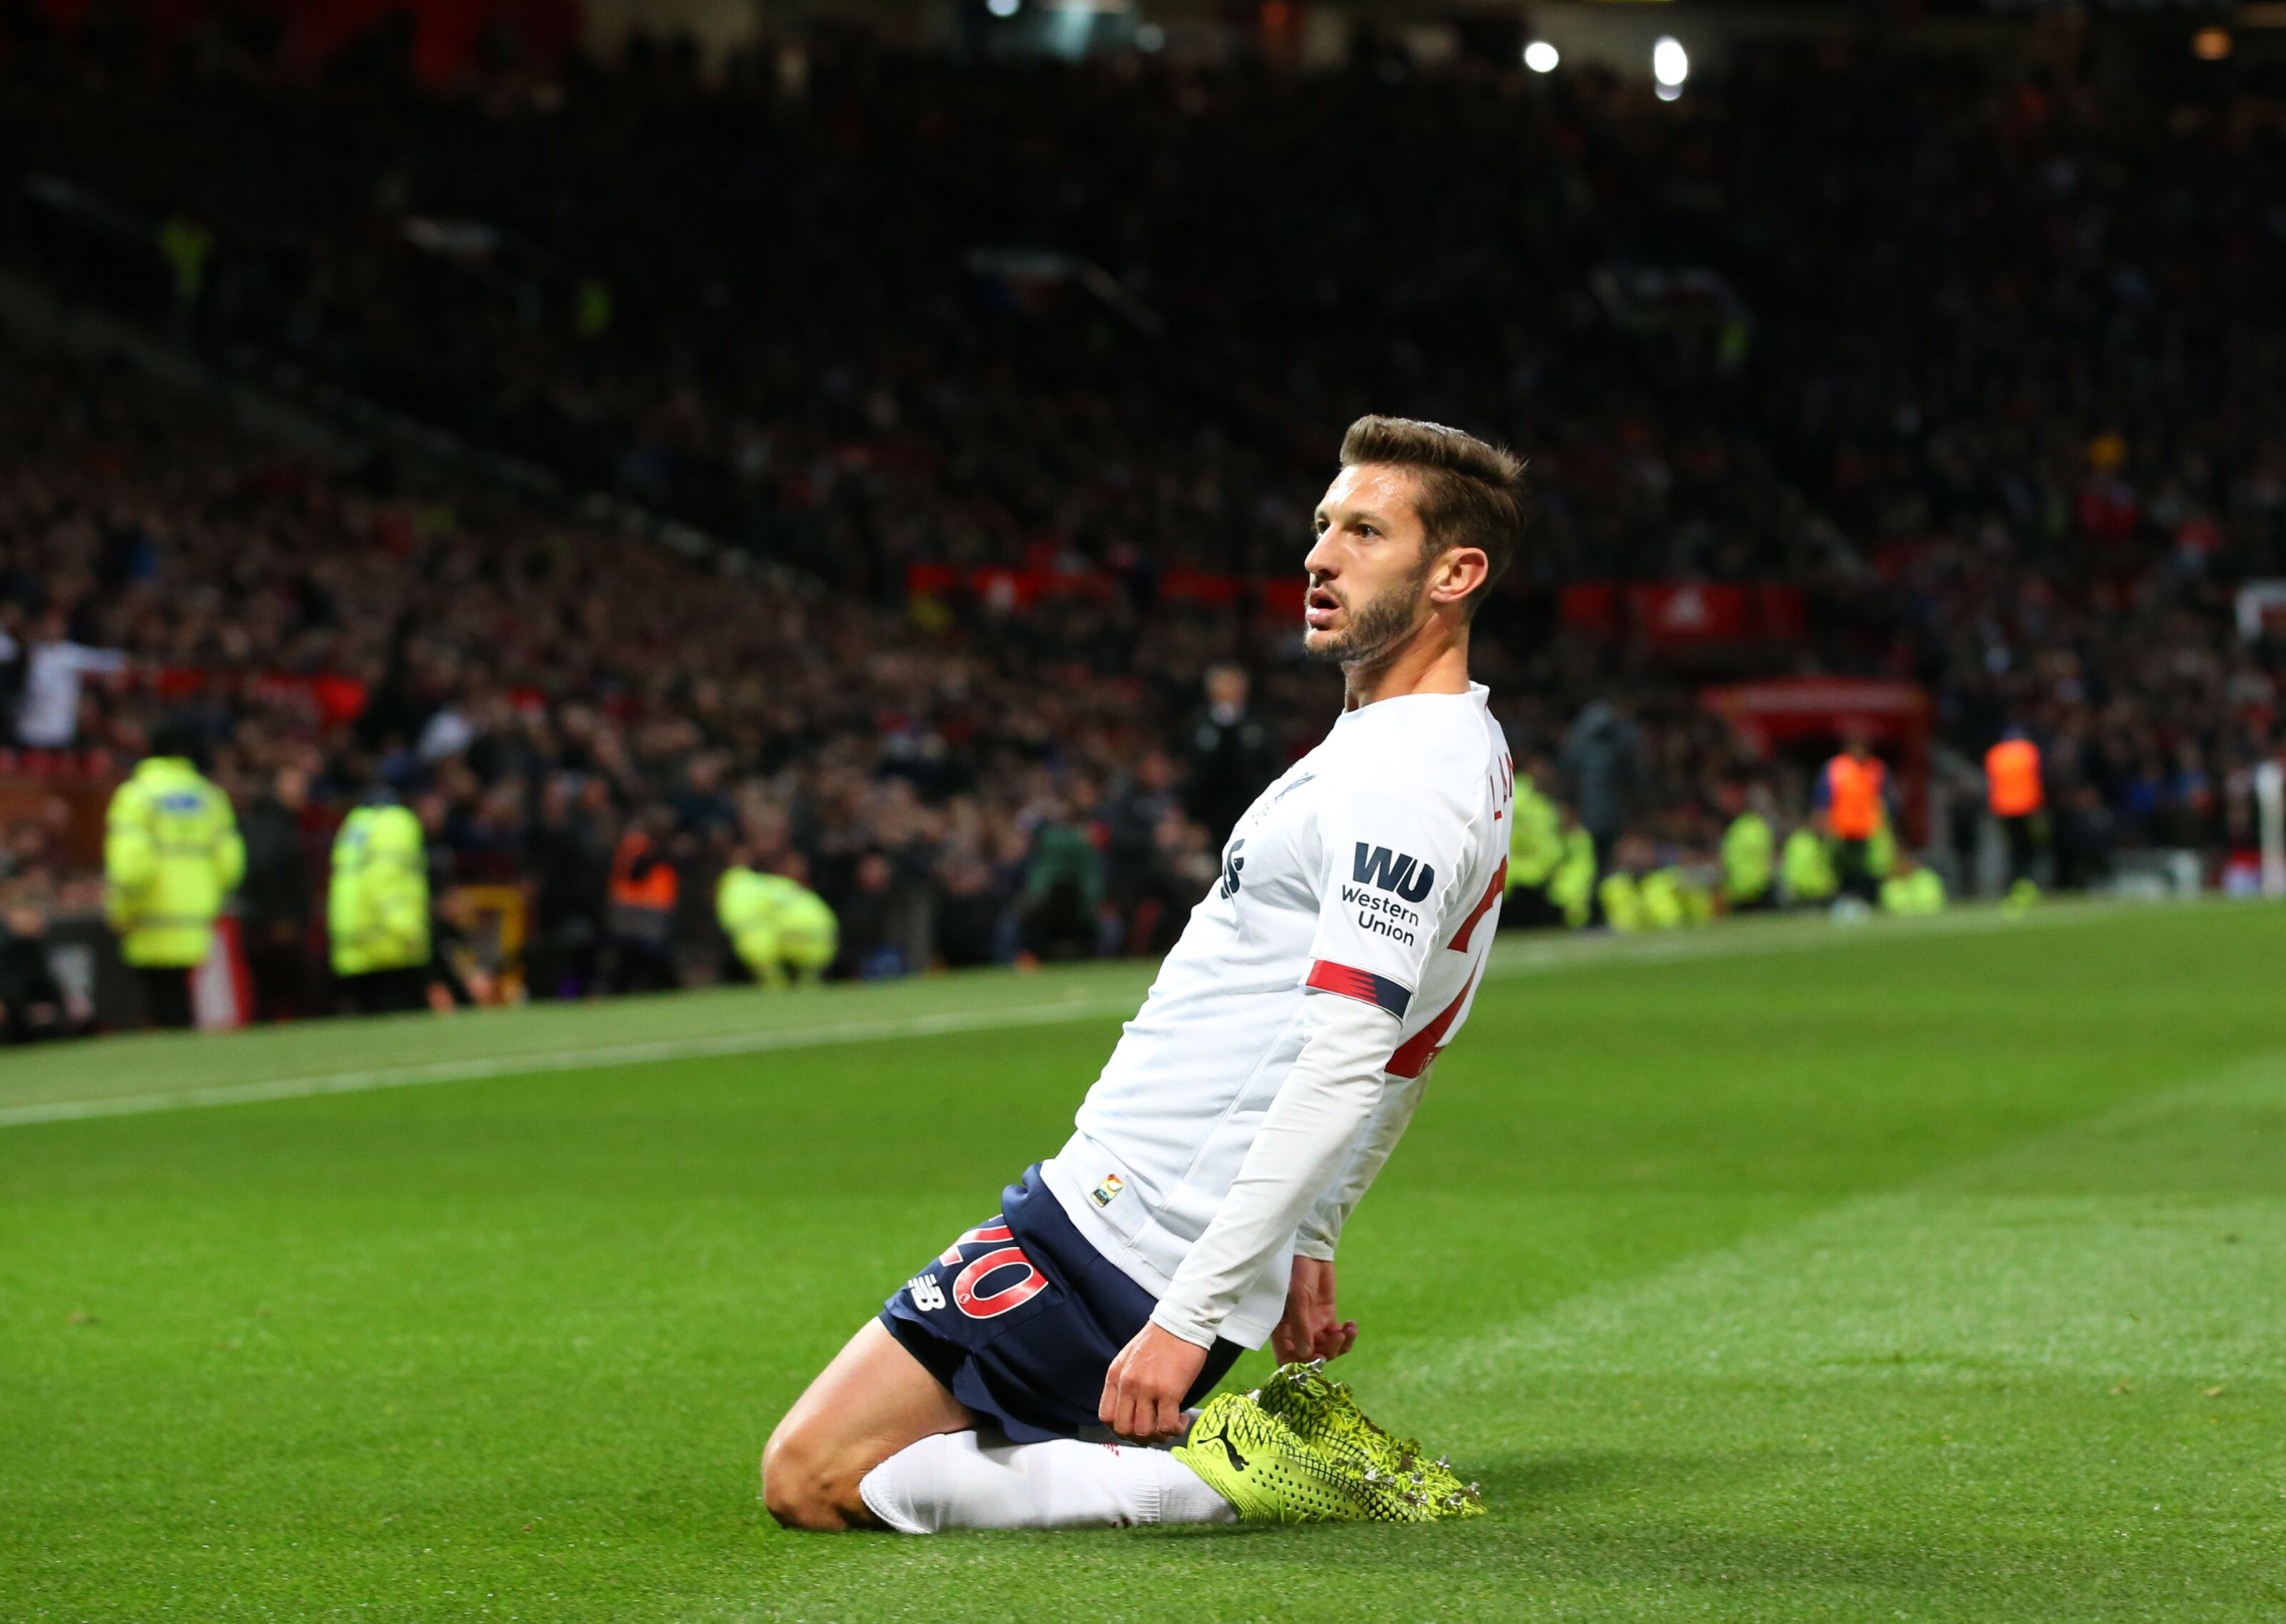 Liverpool: Adam Lallana was never backed by the public to score